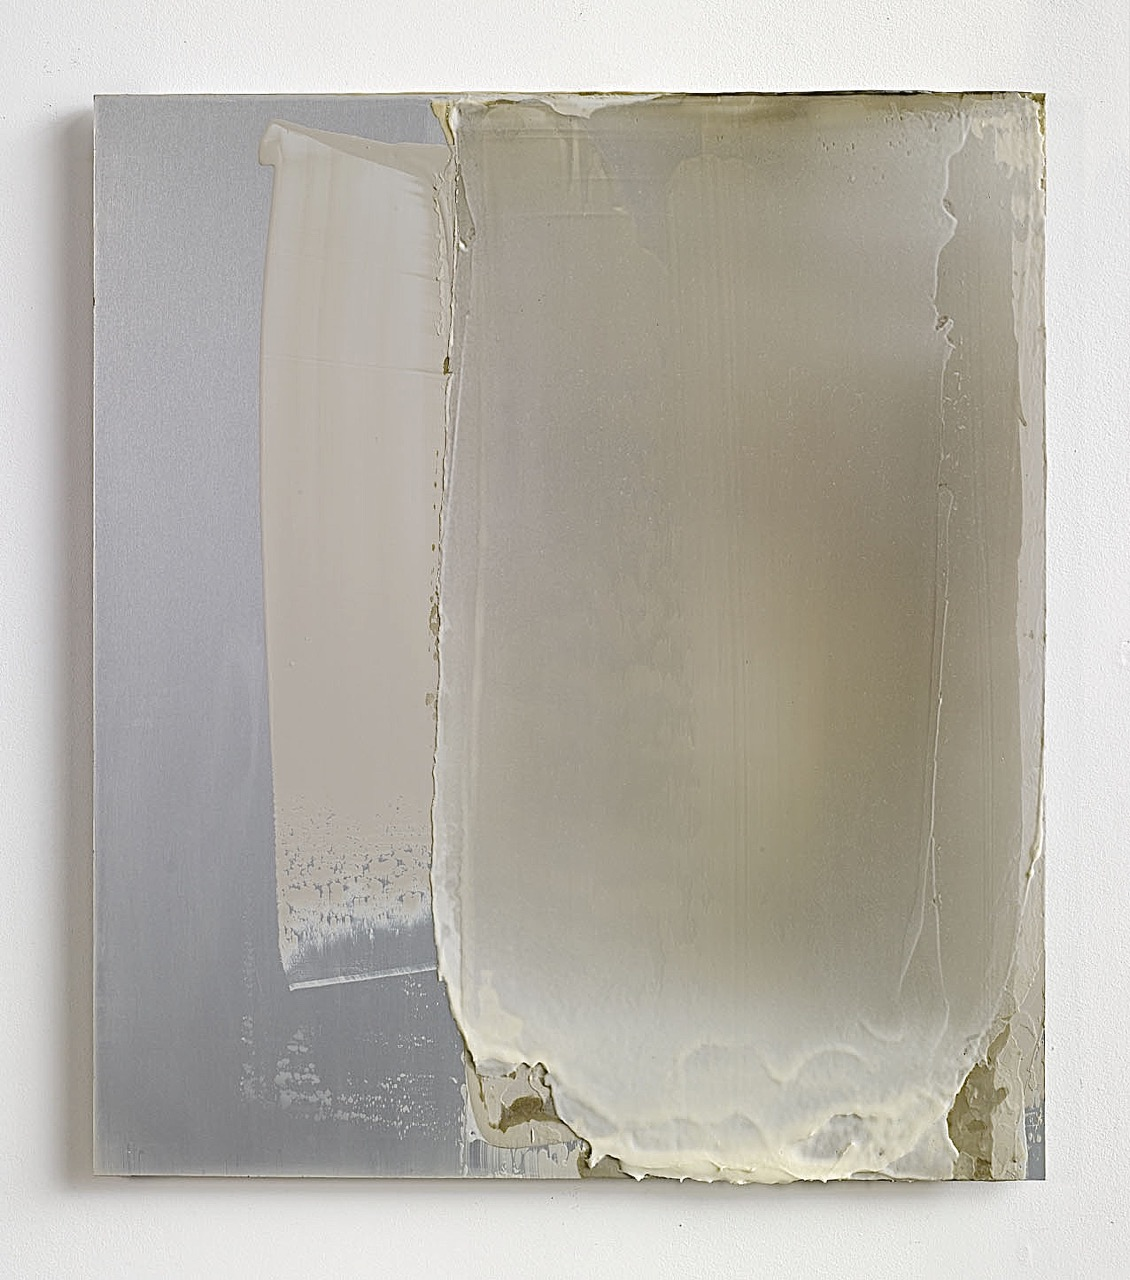 Untitled Composition, 2010, 67x52cm.jpg